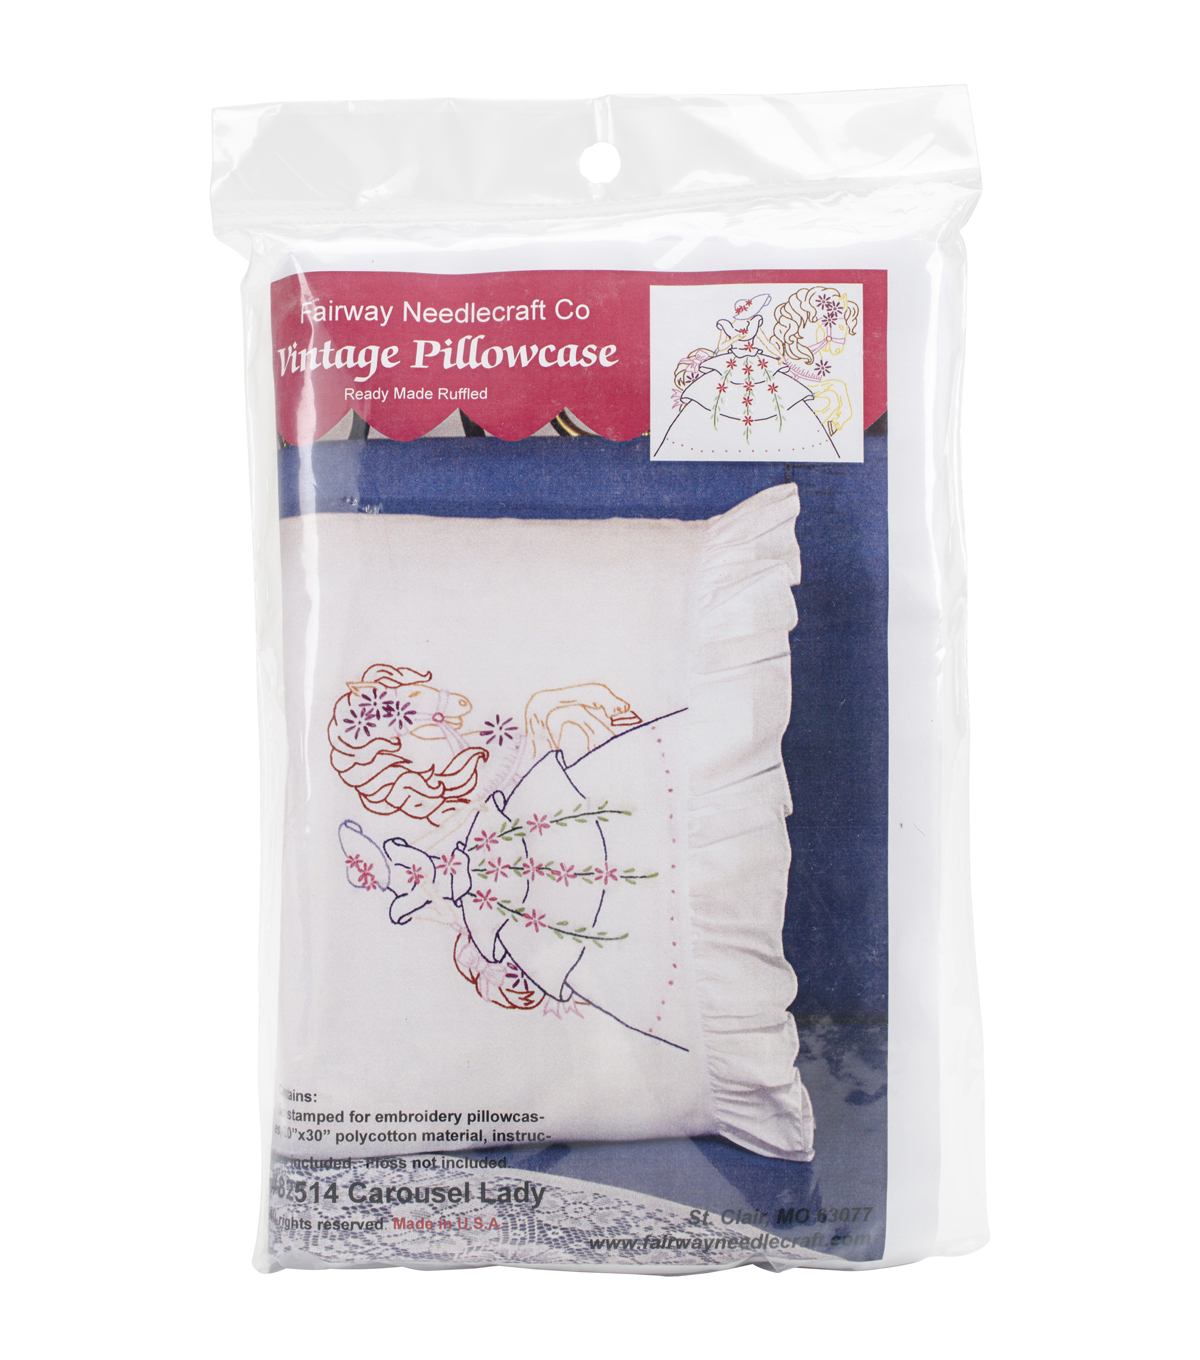 Fairway 2pcs 20\u0027\u0027x30\u0027\u0027 StampedRuffled Edge Pillowcases-Carousel Lady